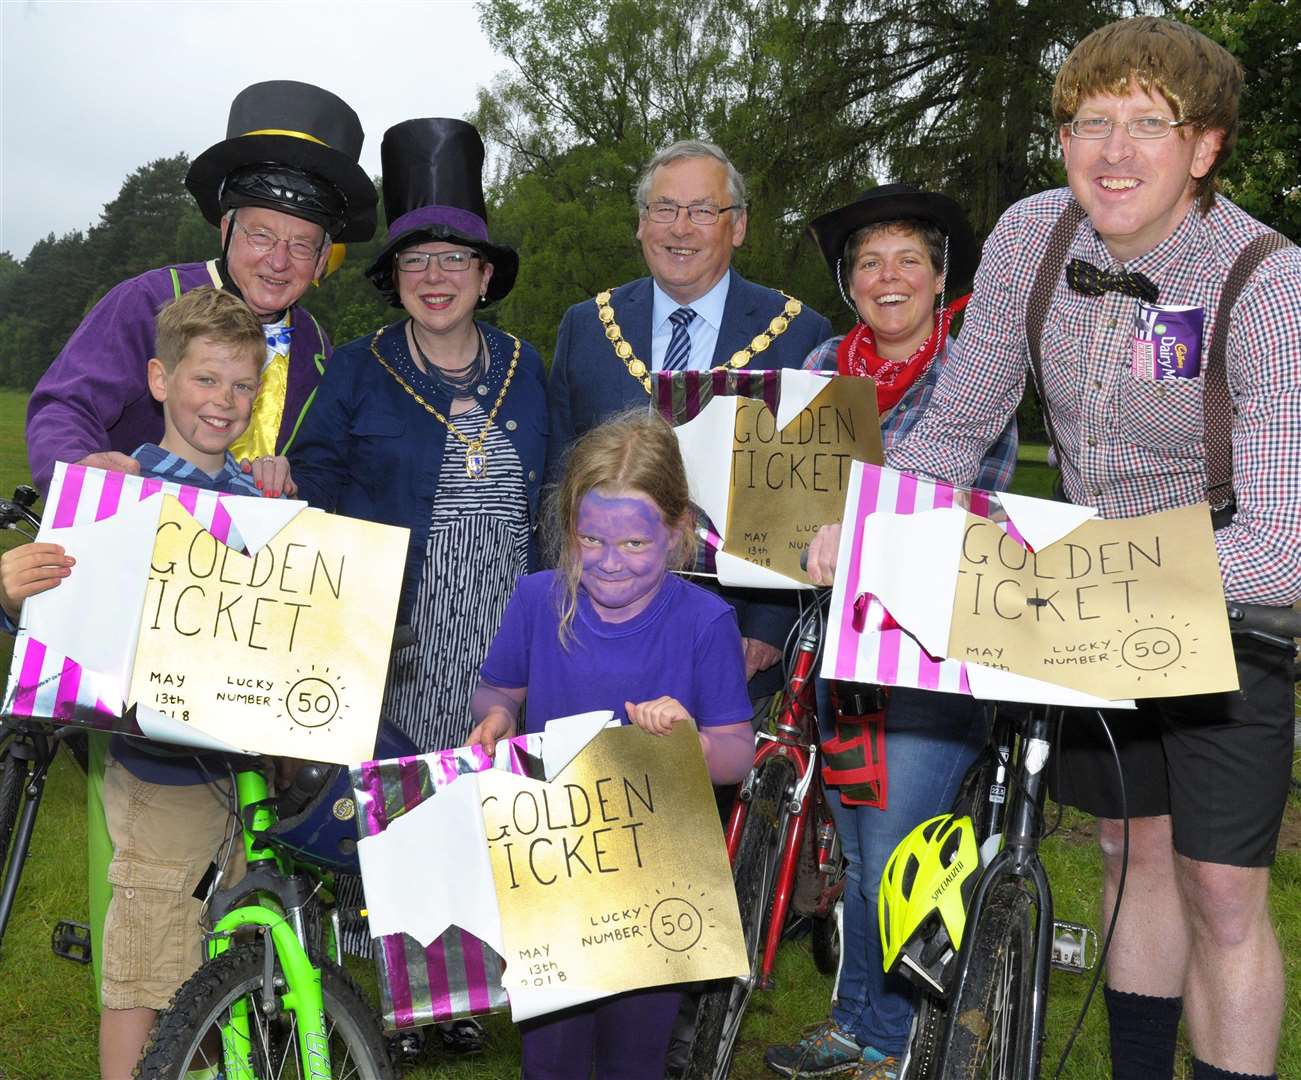 Friends of King's Lynn Samaritans Annual Charity Bike Ride at Sandringham The Sale family (LtoR), Thomas, Martin, Harriet, Catherine and Jon with Borough Mayor and Mayoress Nick and Cheryl Daubney (1981395)